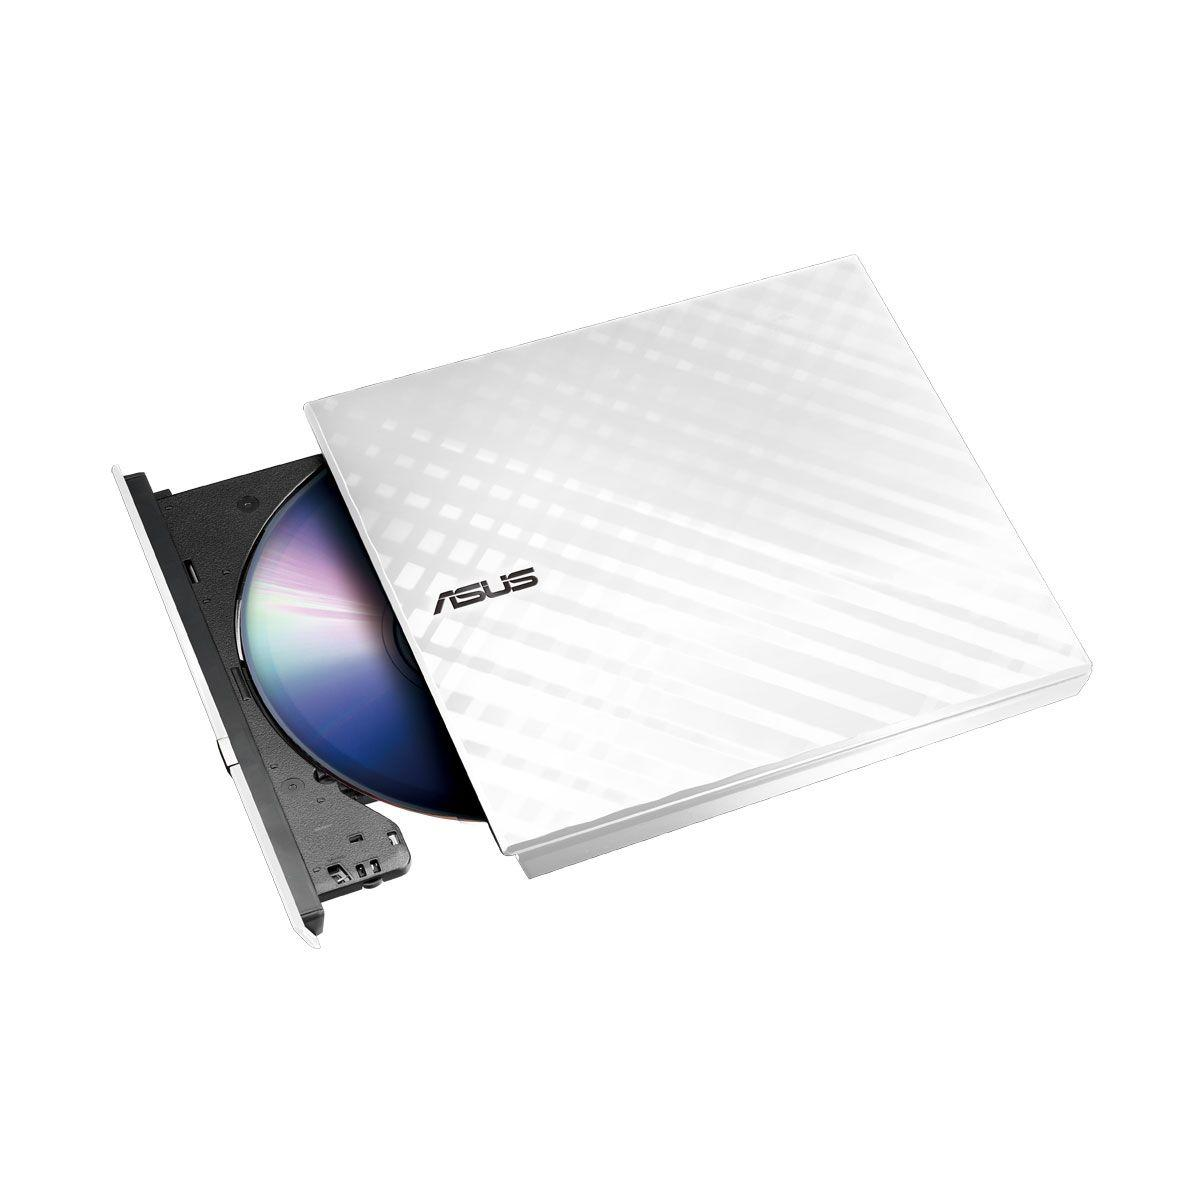 Graveur dvd externe asus ext sdrw-08d2s-u lite/wht/g/as (photo)